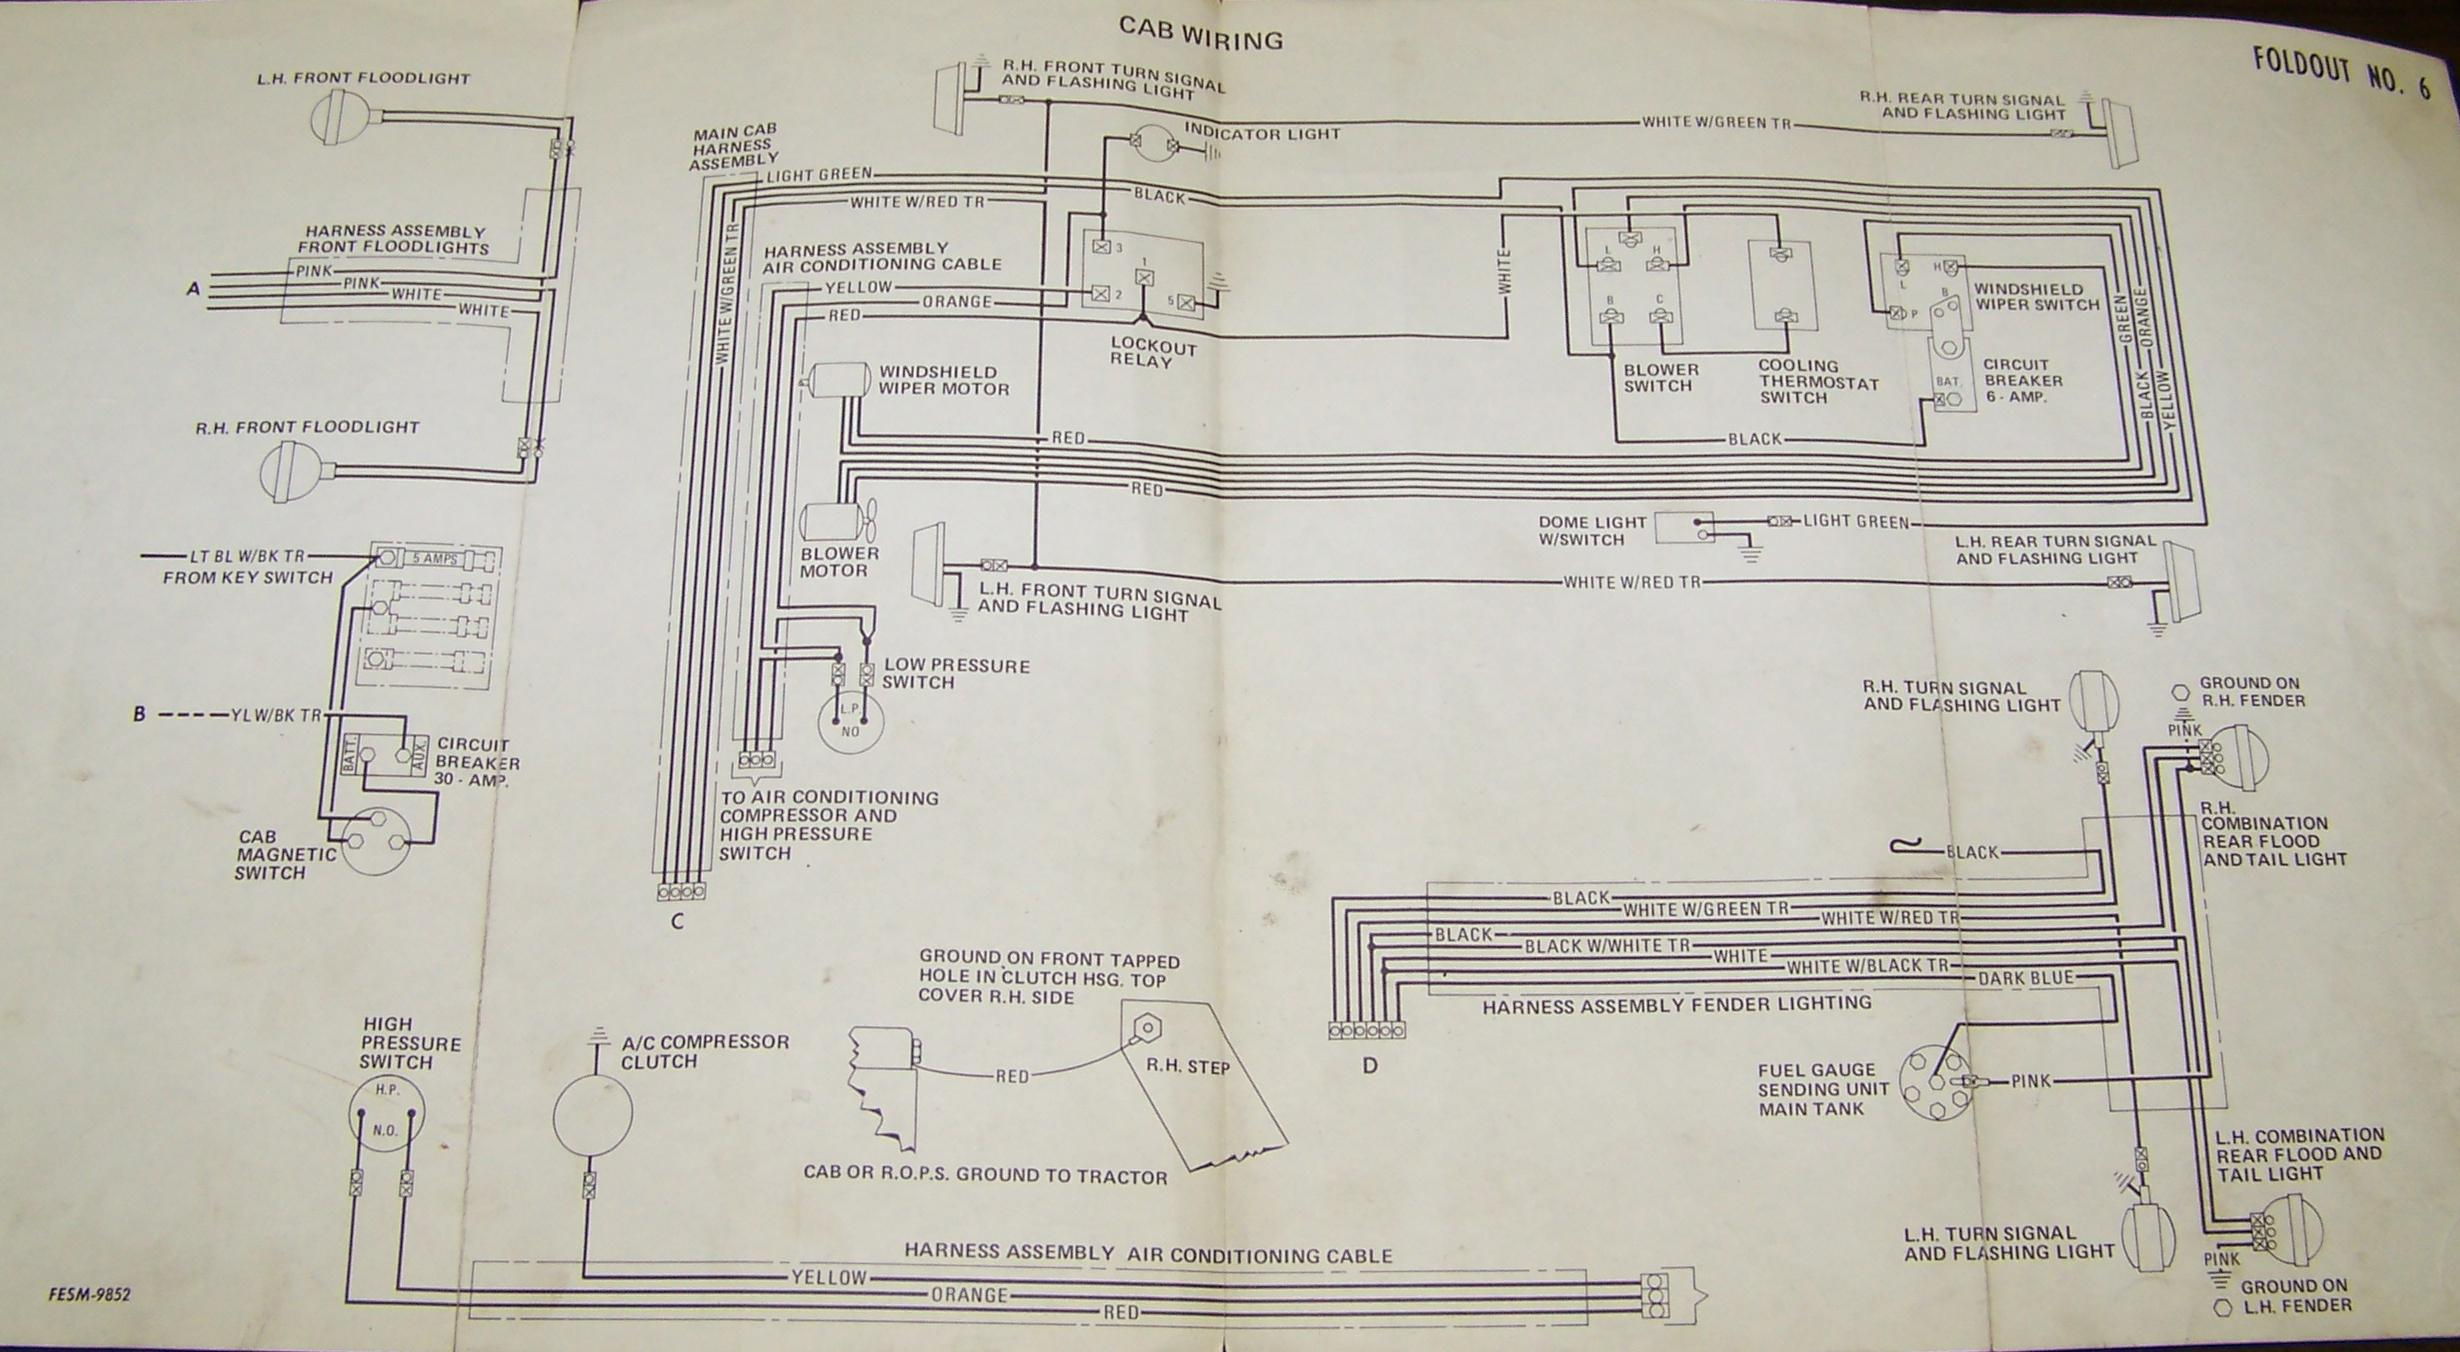 86series6 case ih 5240 wiring diagram wiring diagram and schematic design case 5130 wiring diagram at reclaimingppi.co